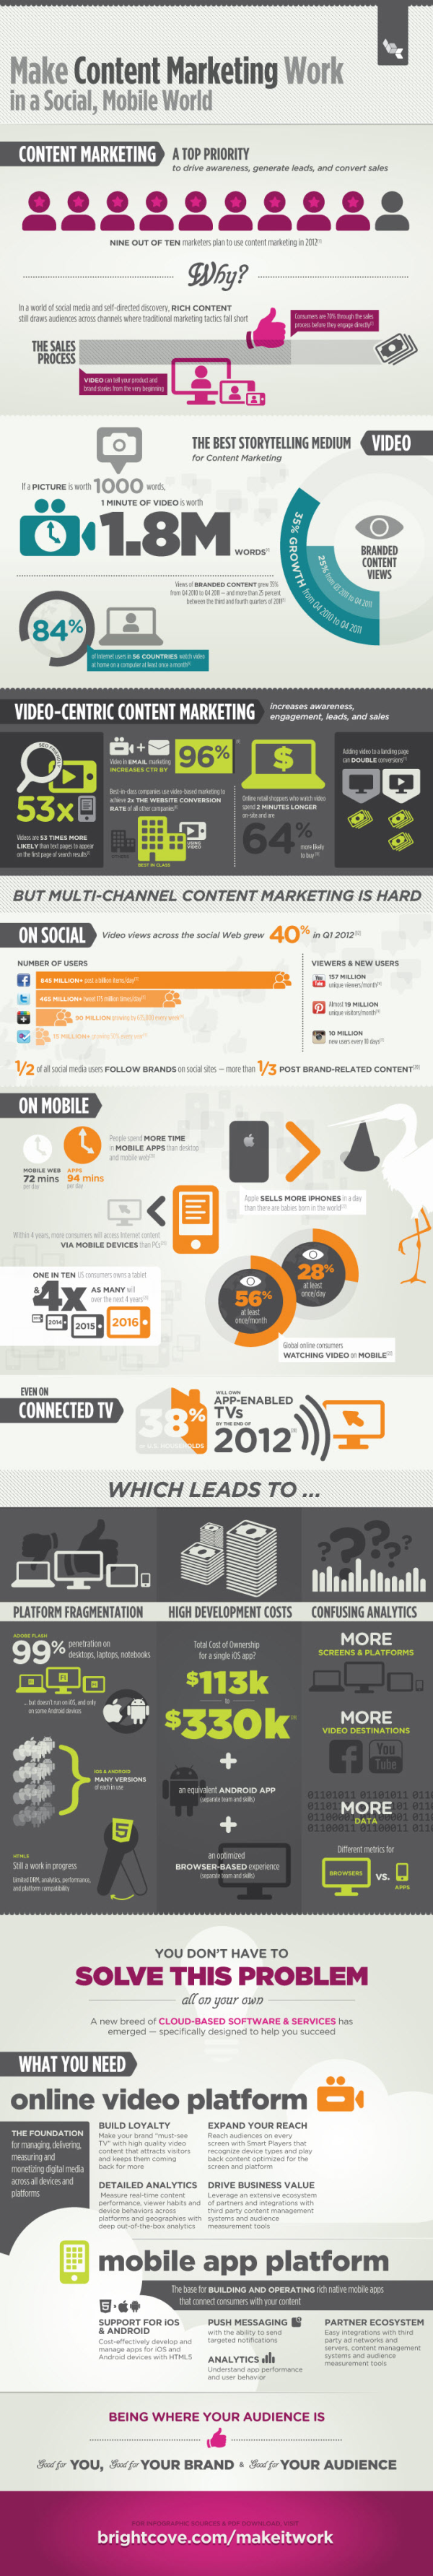 Make content marketing work in a social and mobile world resized 600